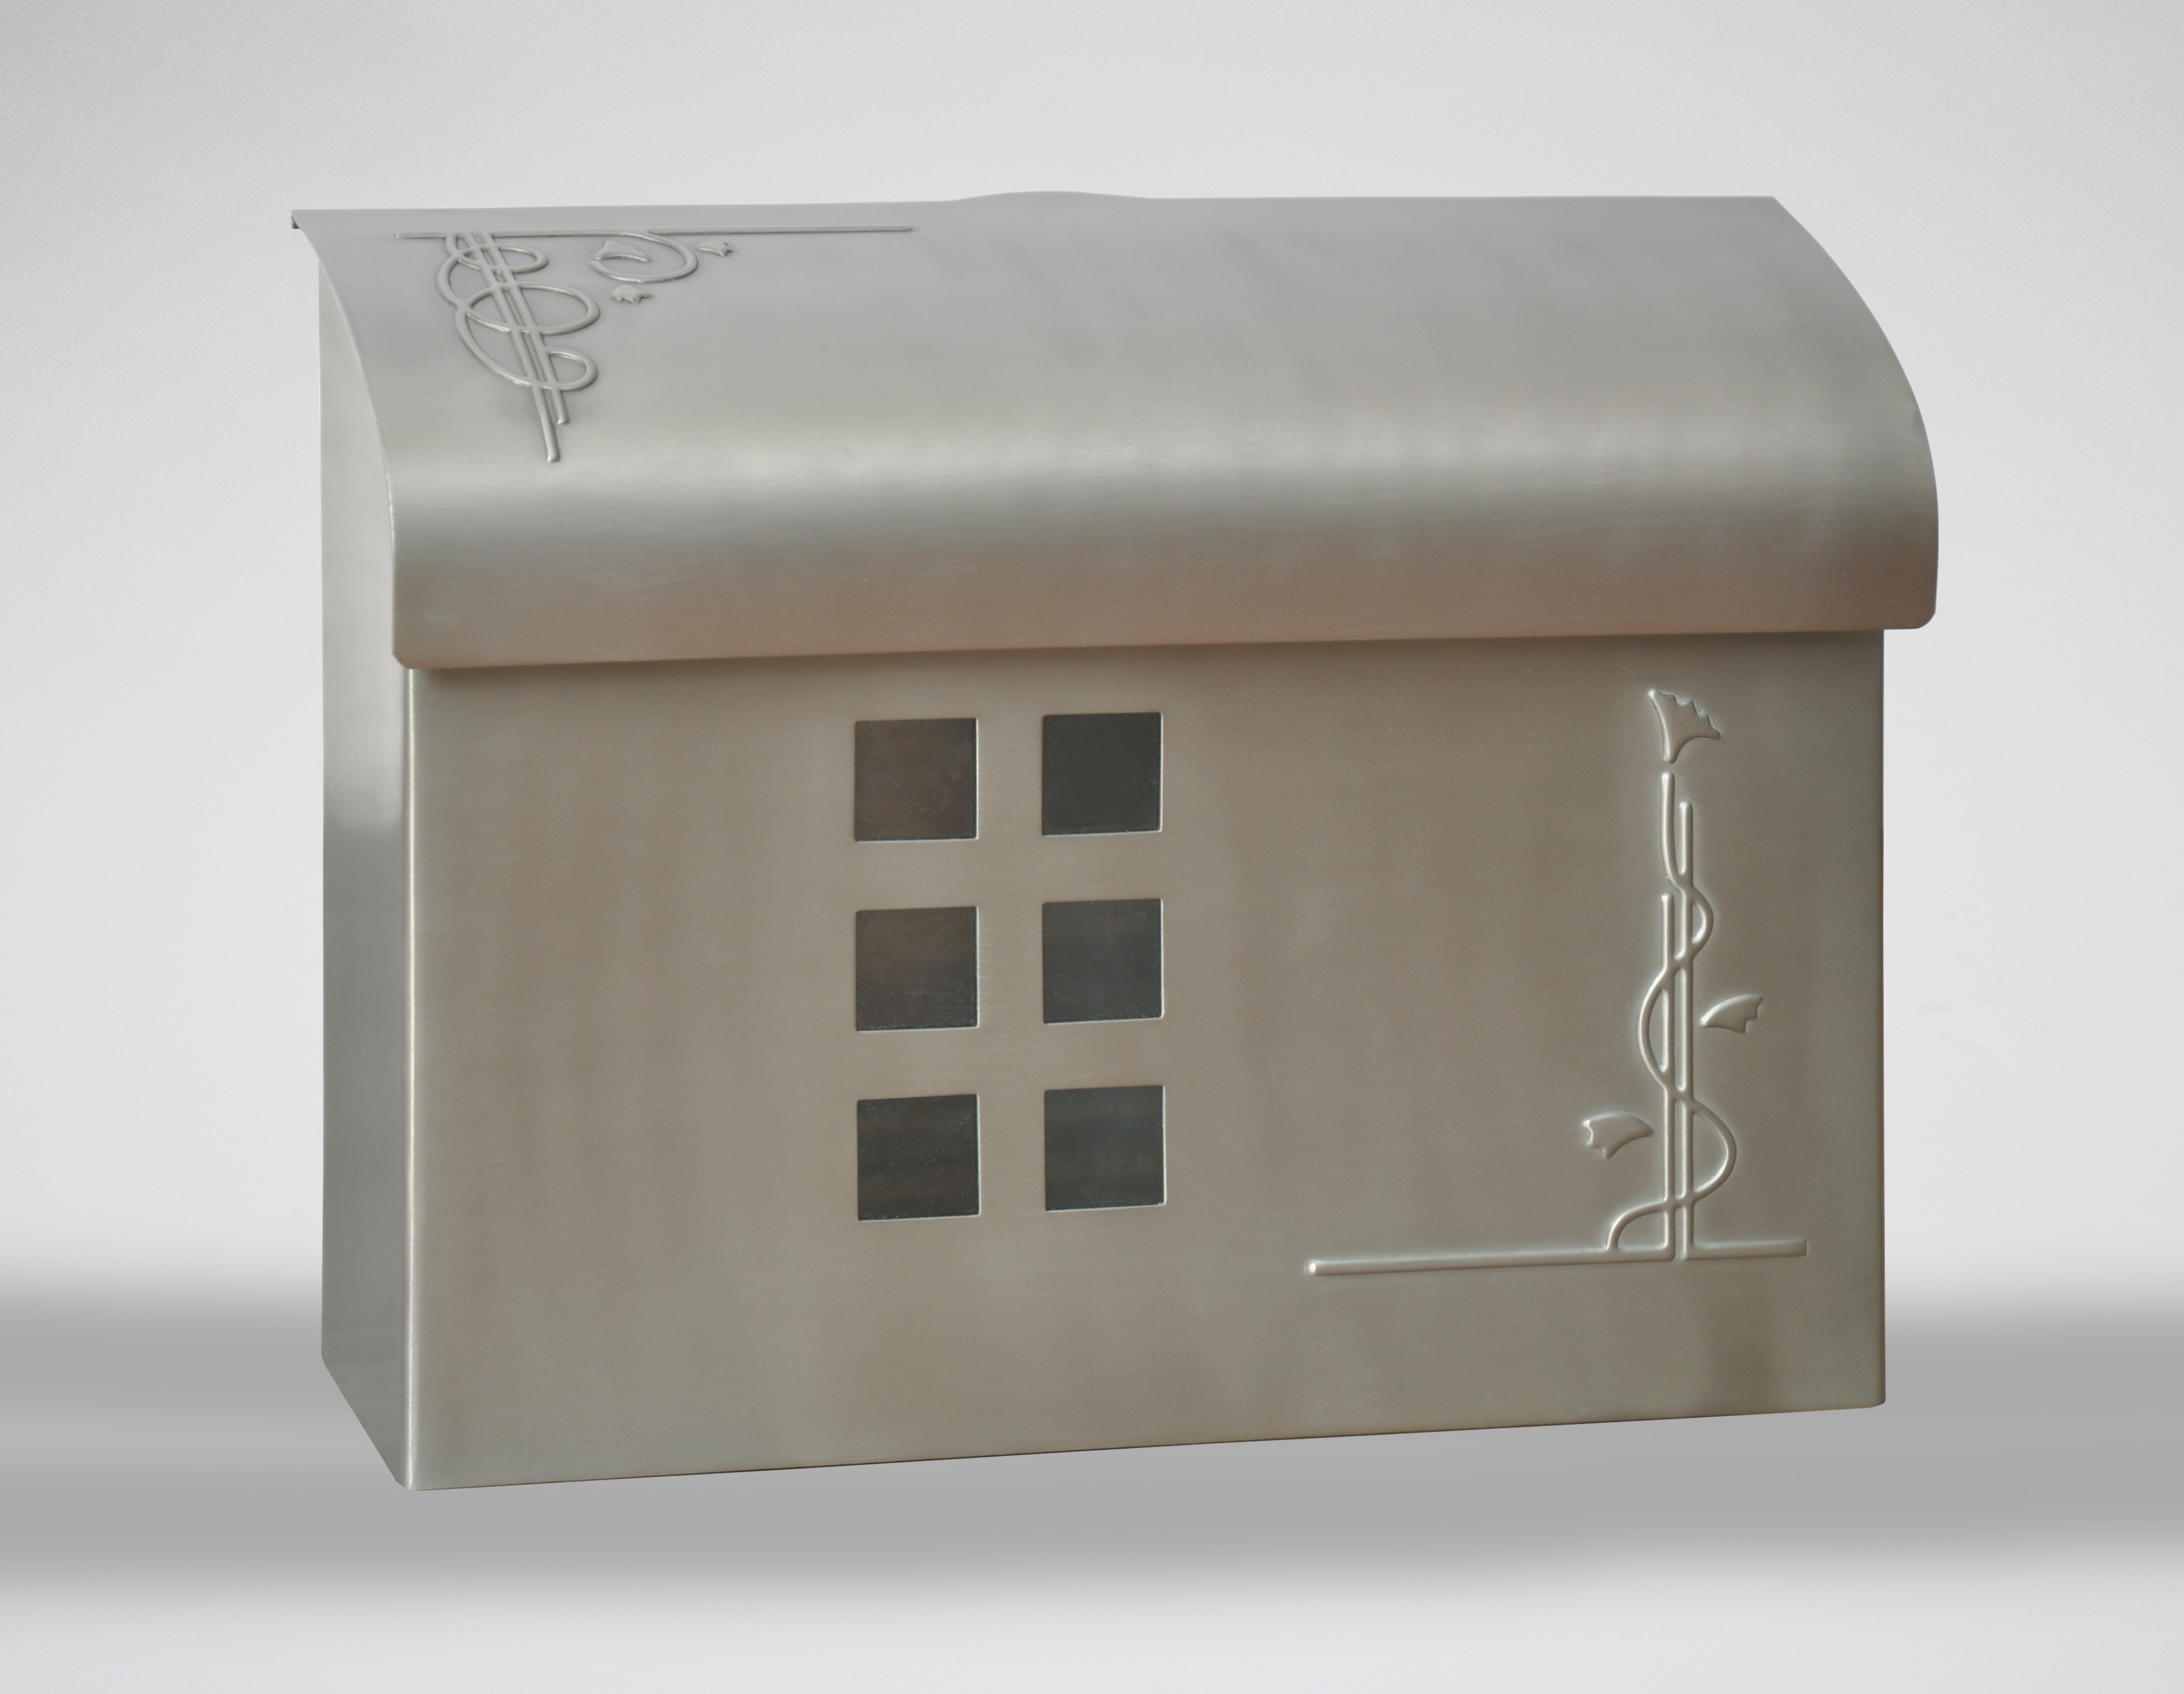 Ecco Fuoriserie E7 Solid Brass Wall Mounted Mailbox